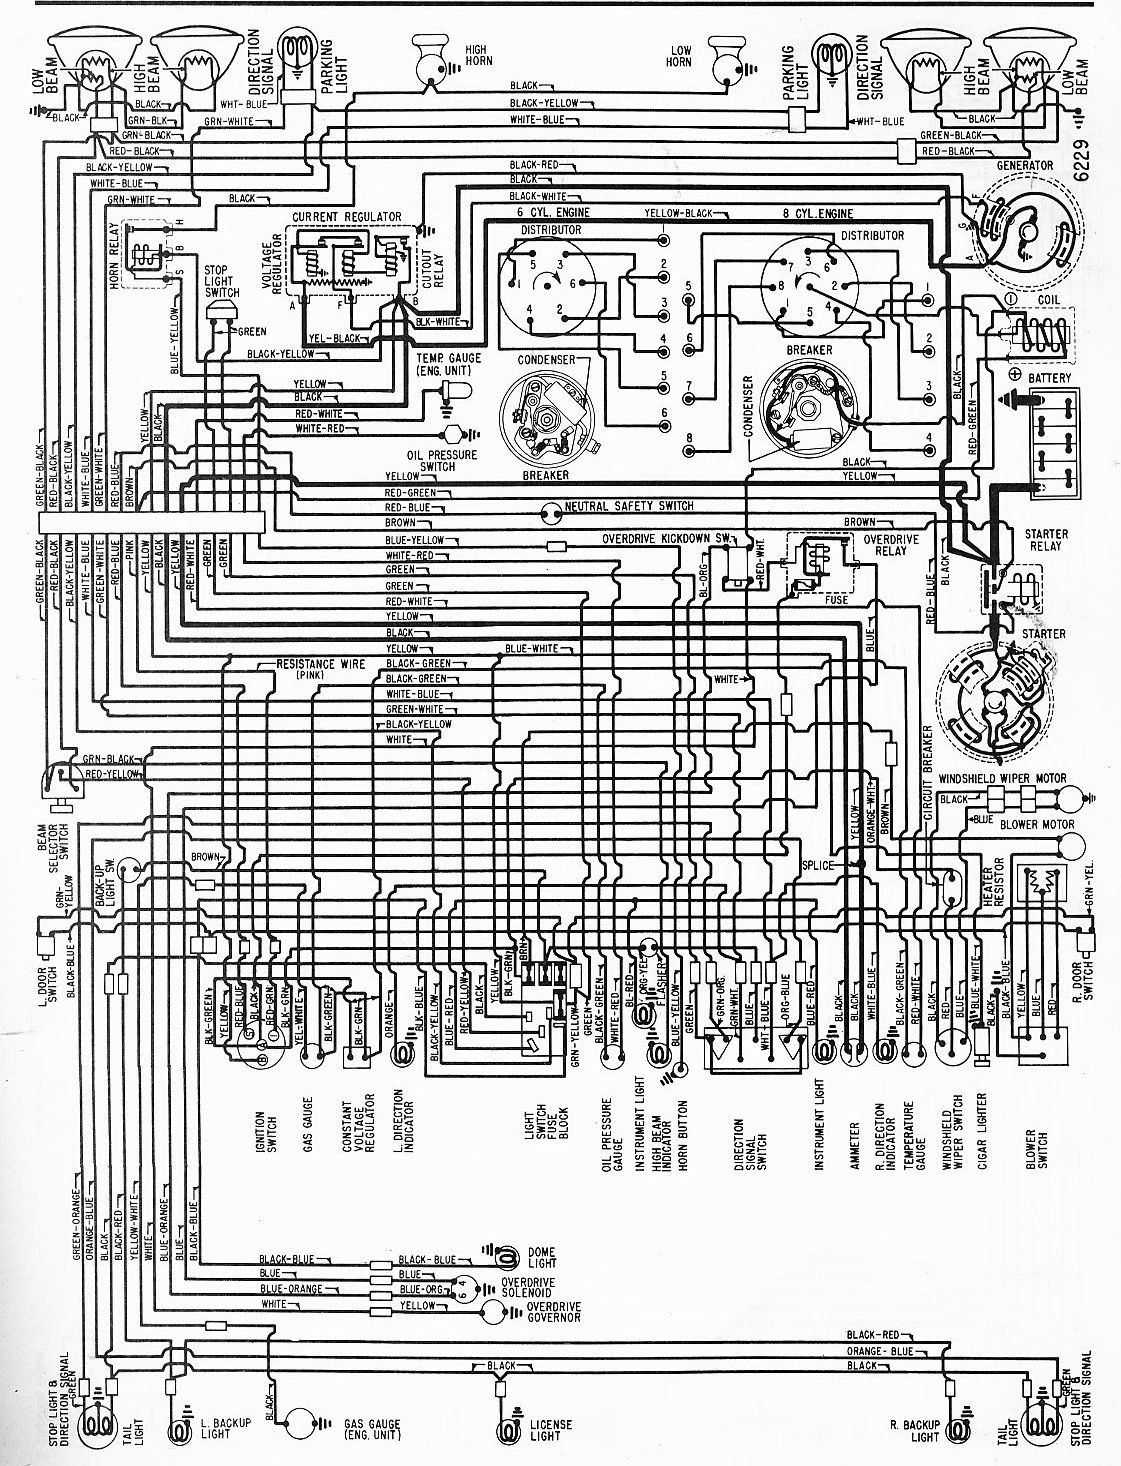 medium resolution of 1970 chevy c10 fuse box diagram wiring diagram portal with regard to 1972 chevy truck wiring diagram